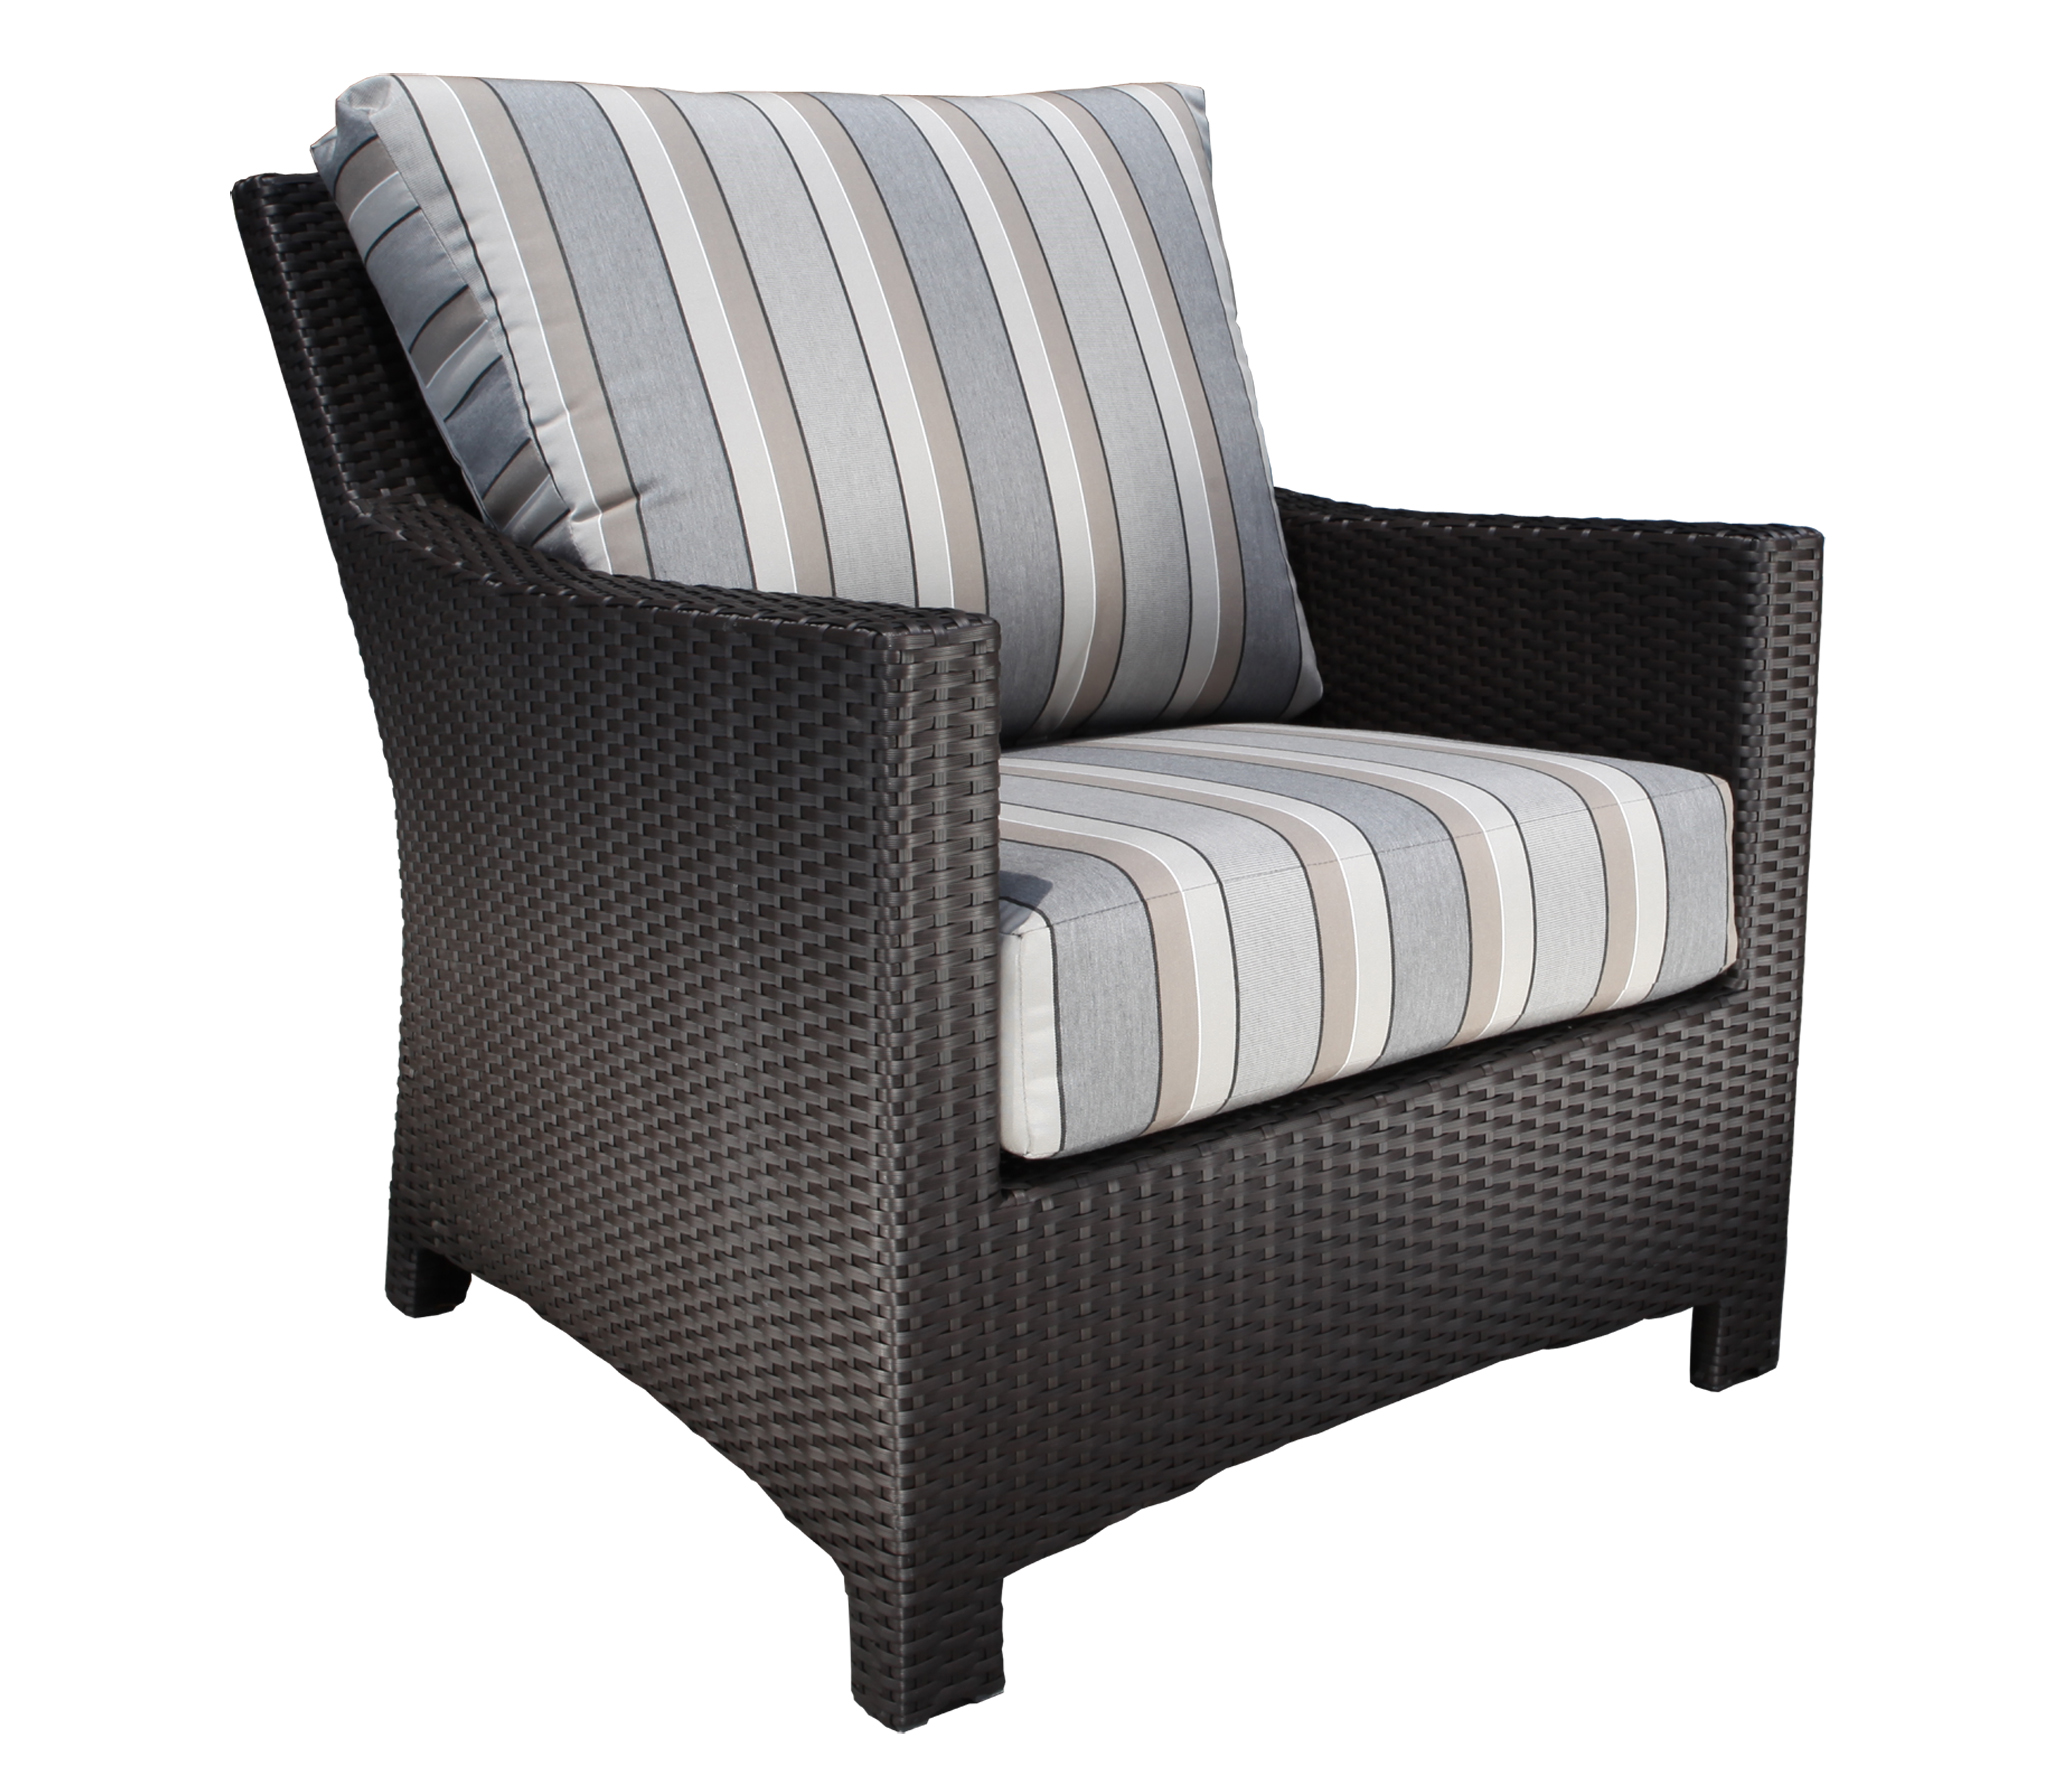 Deep Seating Patio Chairs Flight Wicker Deep Seating Chair Patio Furniture At Sun